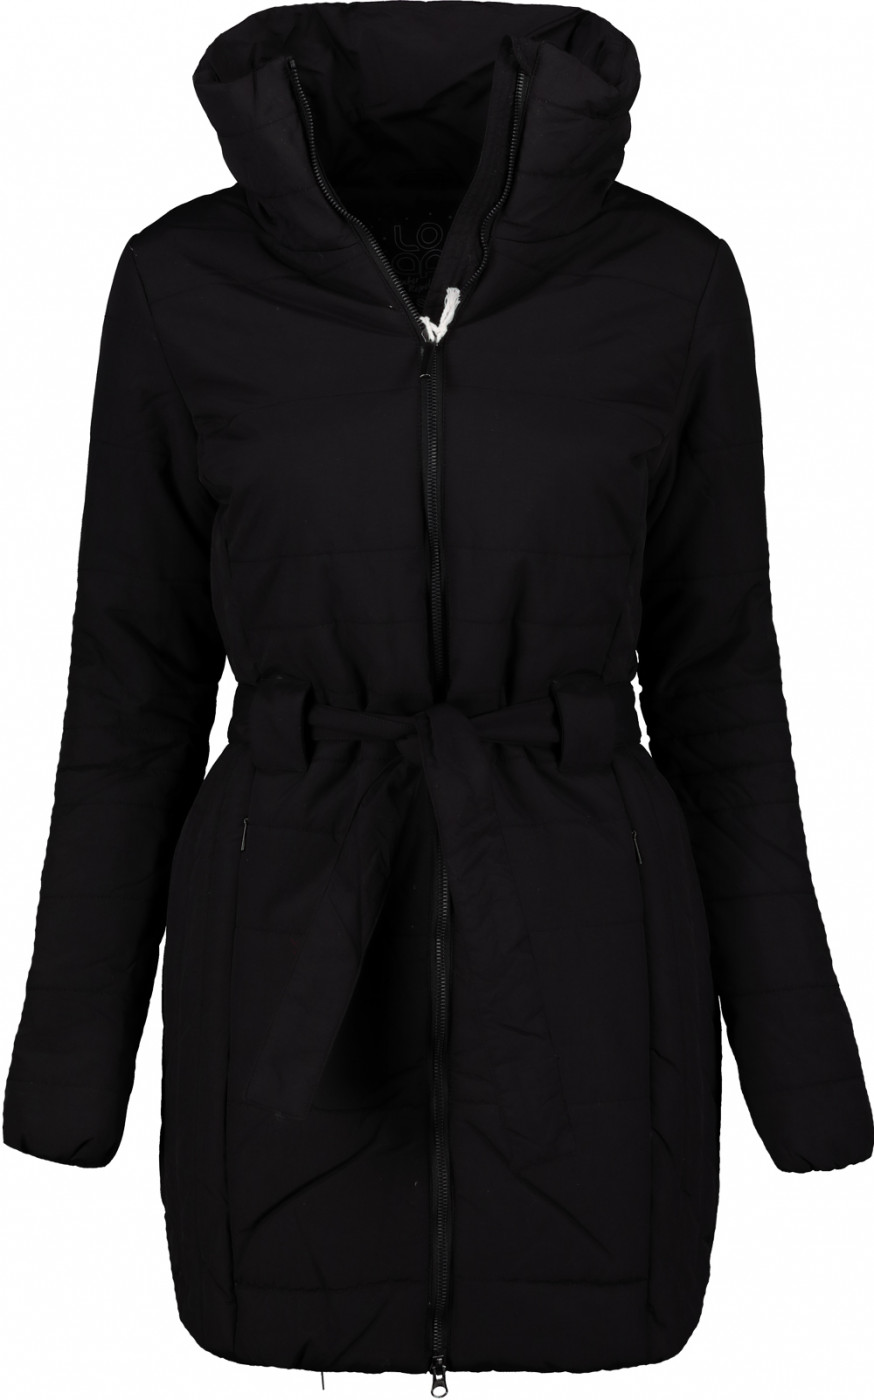 Women's winter coat LOAP TUDORA